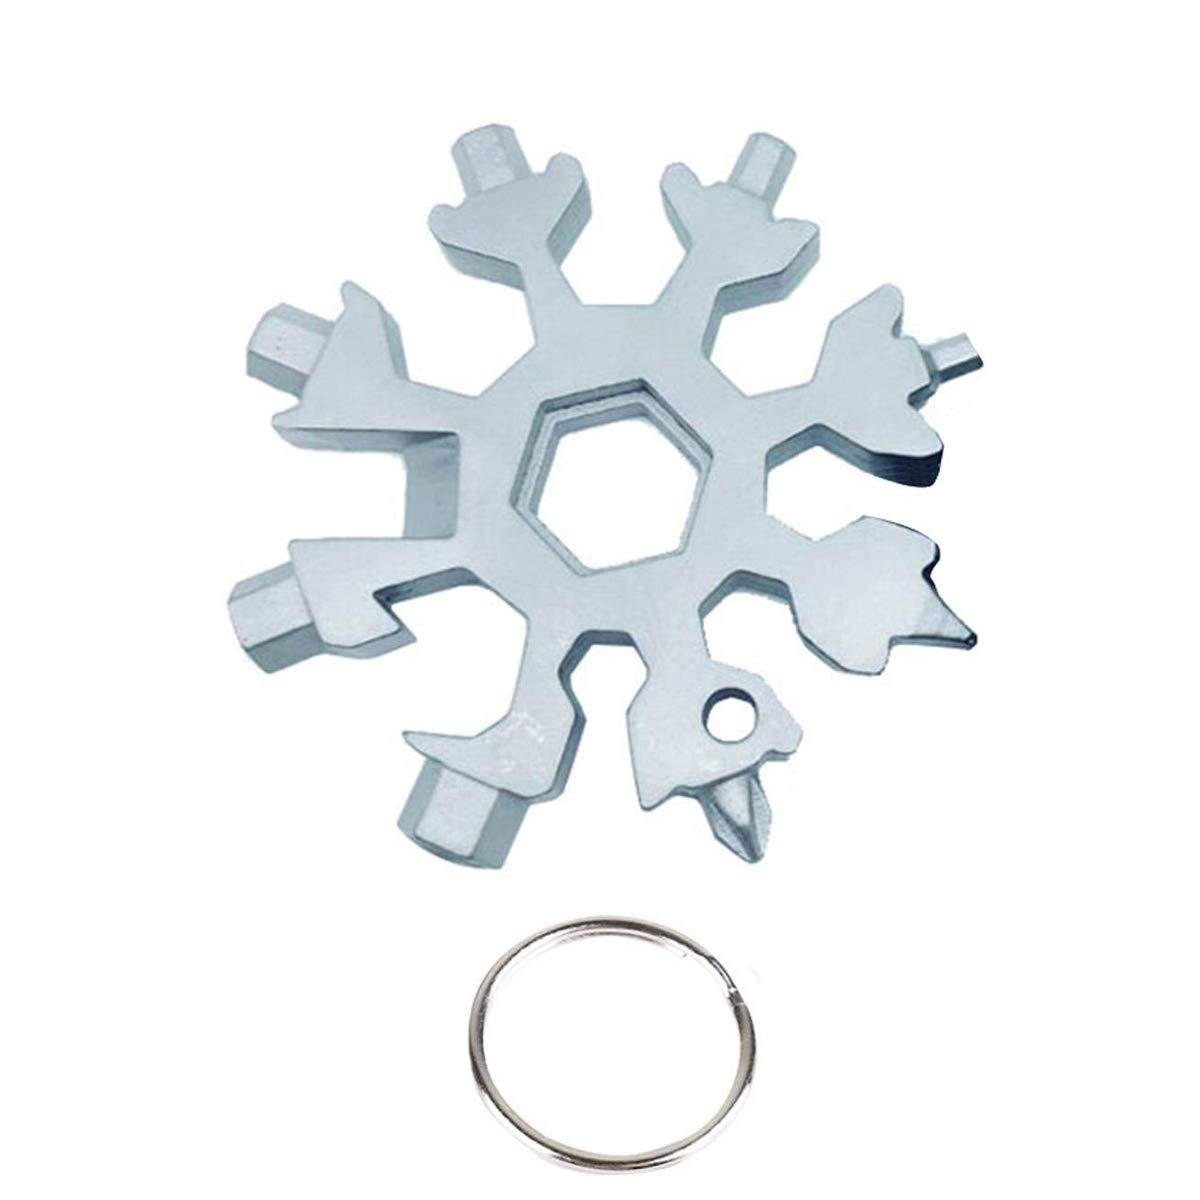 Ansblue 18-in-1 Snowflake Multi Tool, Stainless Steel Outdoor EDC Tools,Outdoor Portable Snowflake Keychain Screwdriver Bottle Opener Incredible Tool for Military Enthusiasts(Silver+Black)